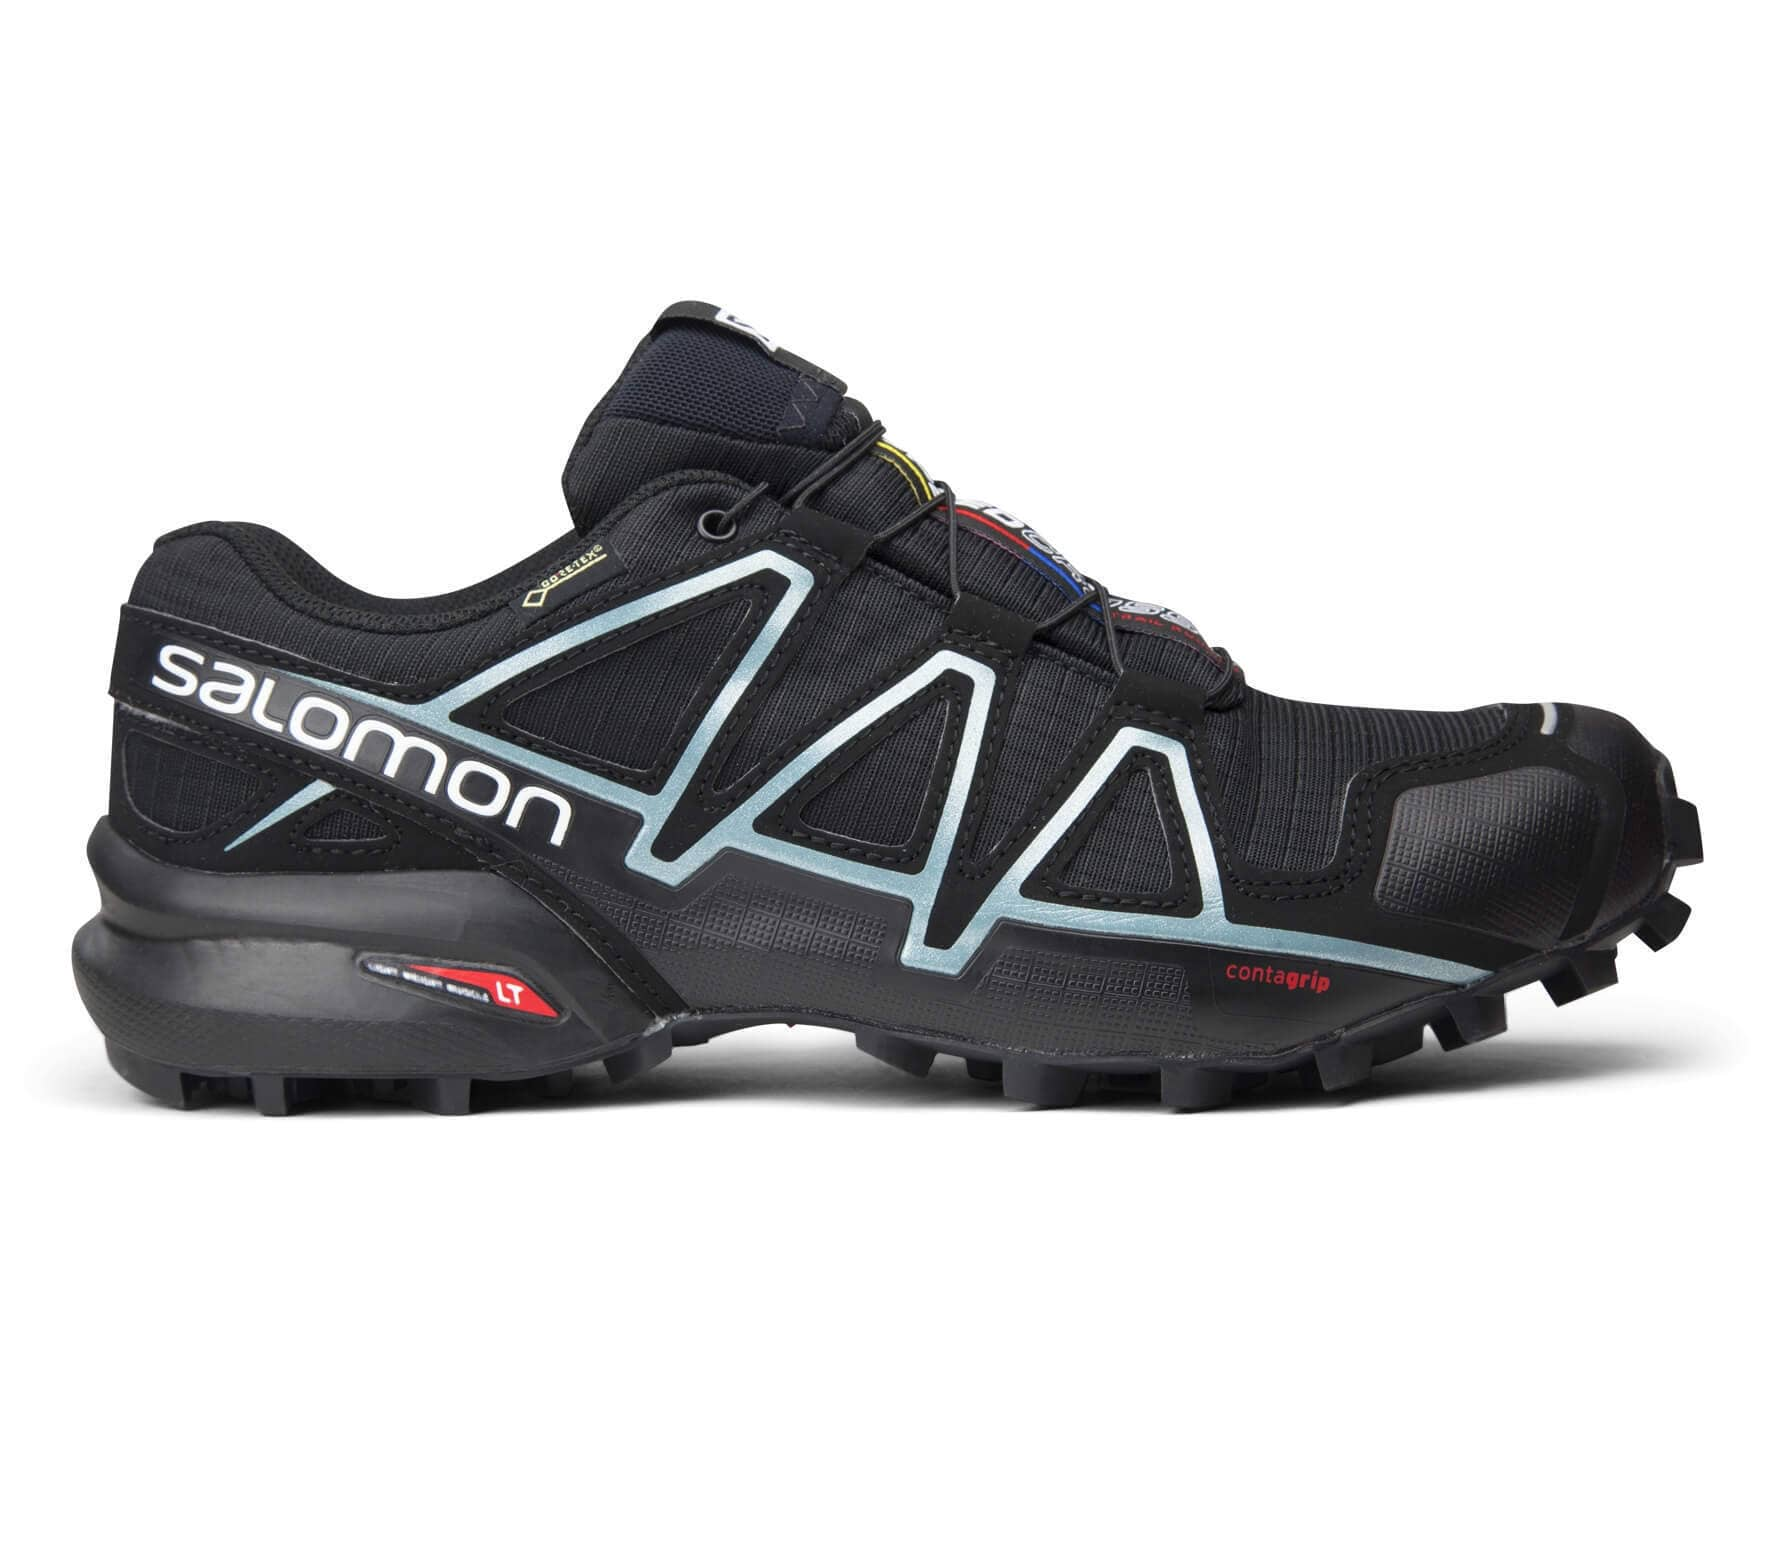 94b5b5f849c6 Salomon - Speedcross 4 GTX women s running shoes (black silver ...